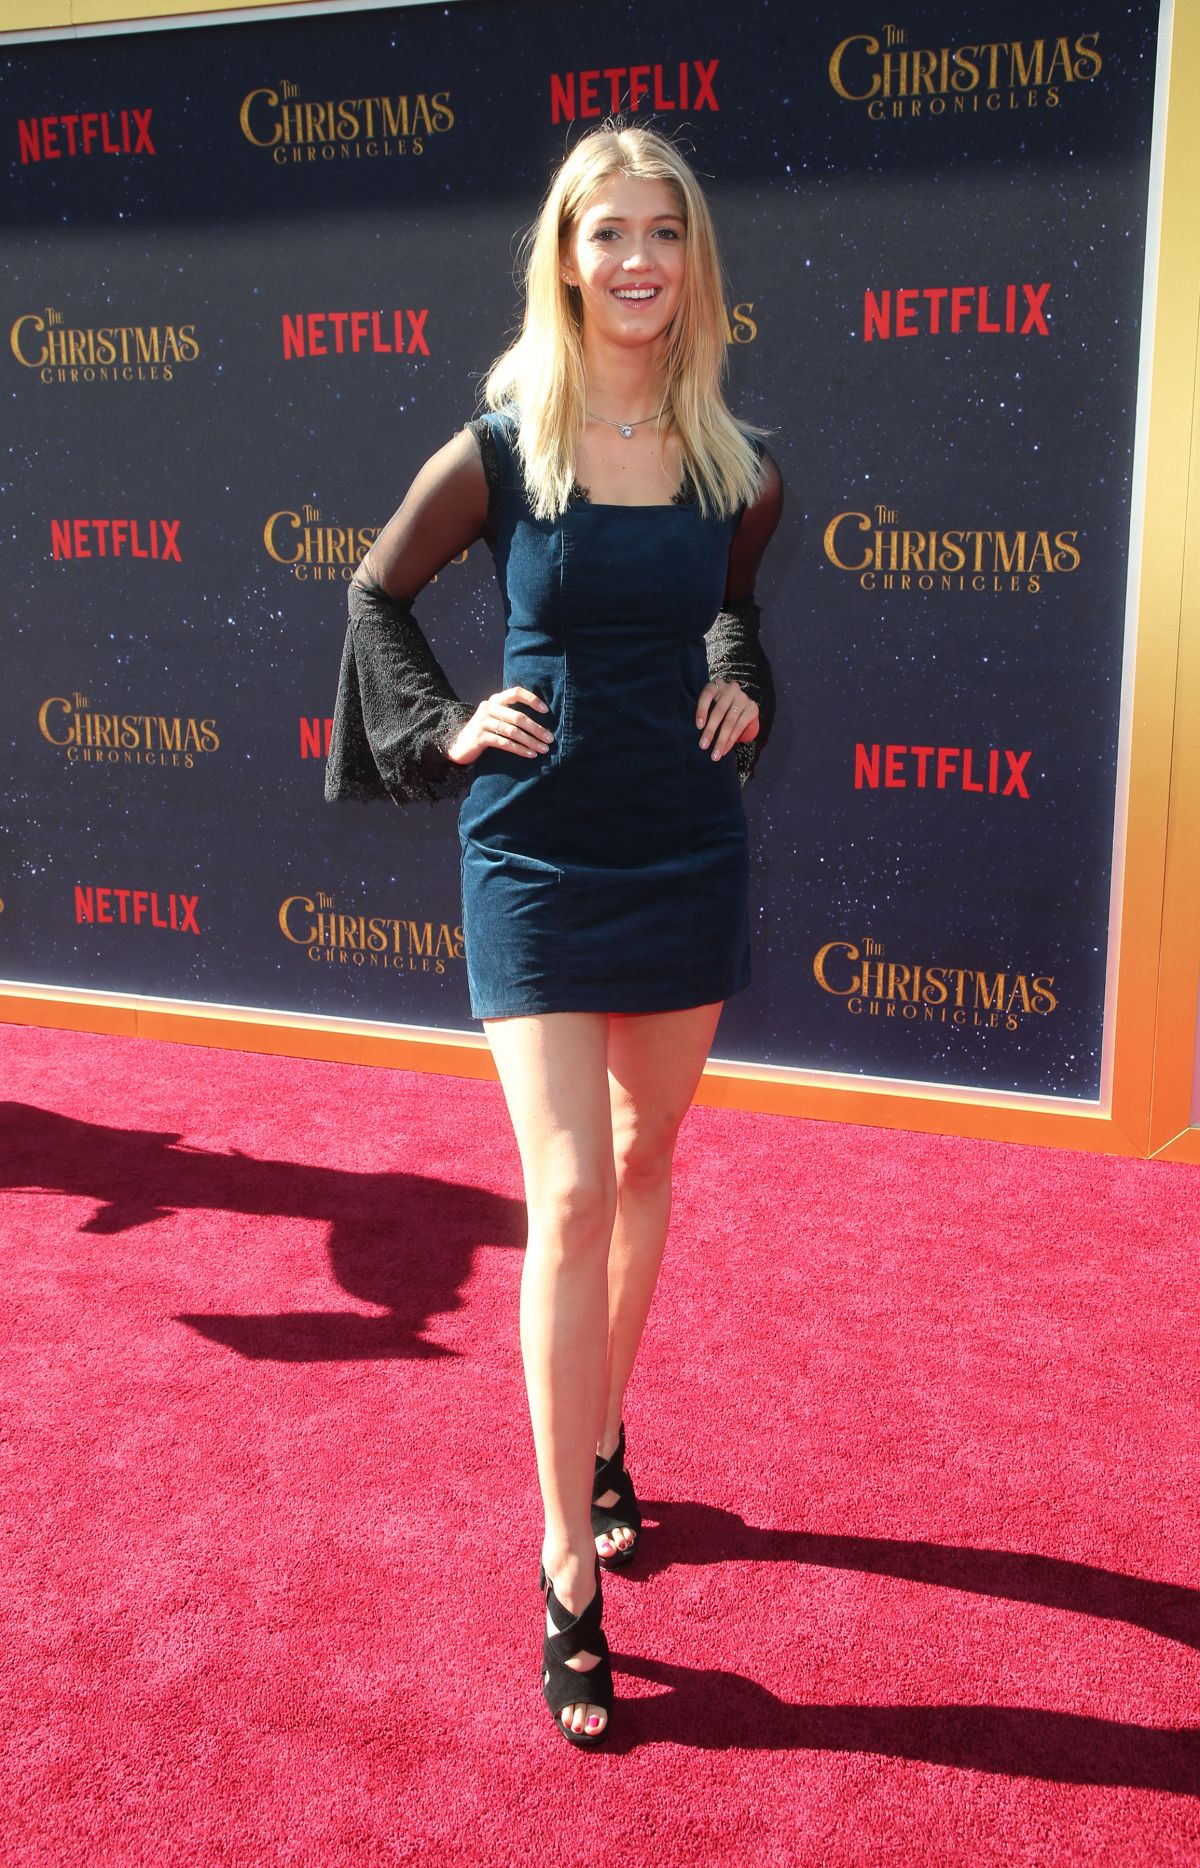 The Christmas Chronicles 2.Lexi Dibenedetto At The Christmas Chronicles Premiere In Los